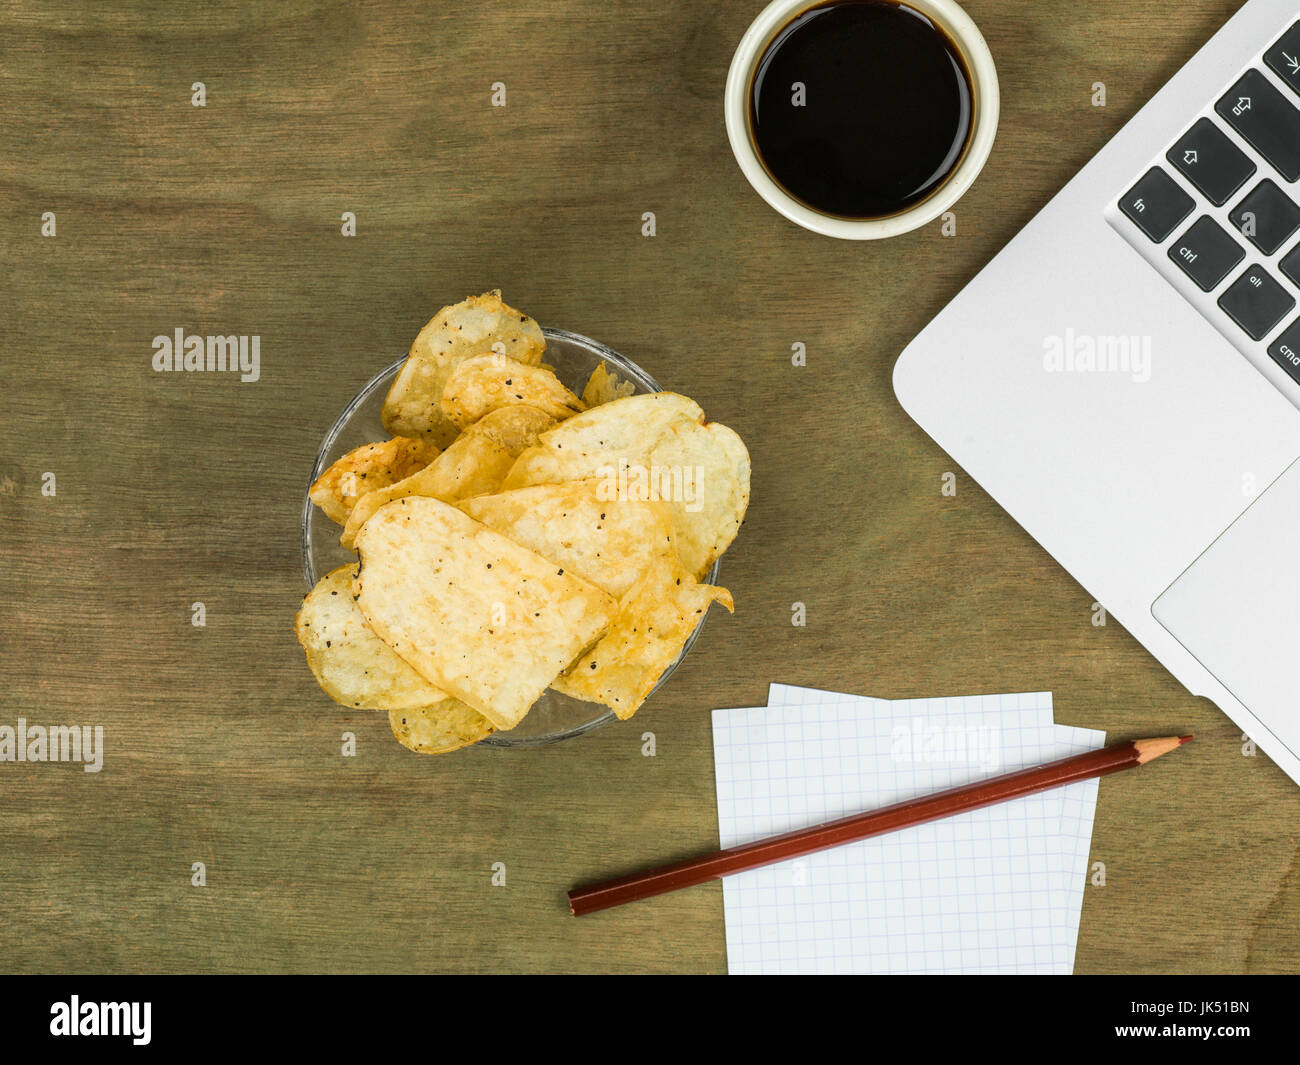 Computer Workstation With a Boewl of Potato Crisps or Potato Chips With a Cup of Black Coffee - Stock Image